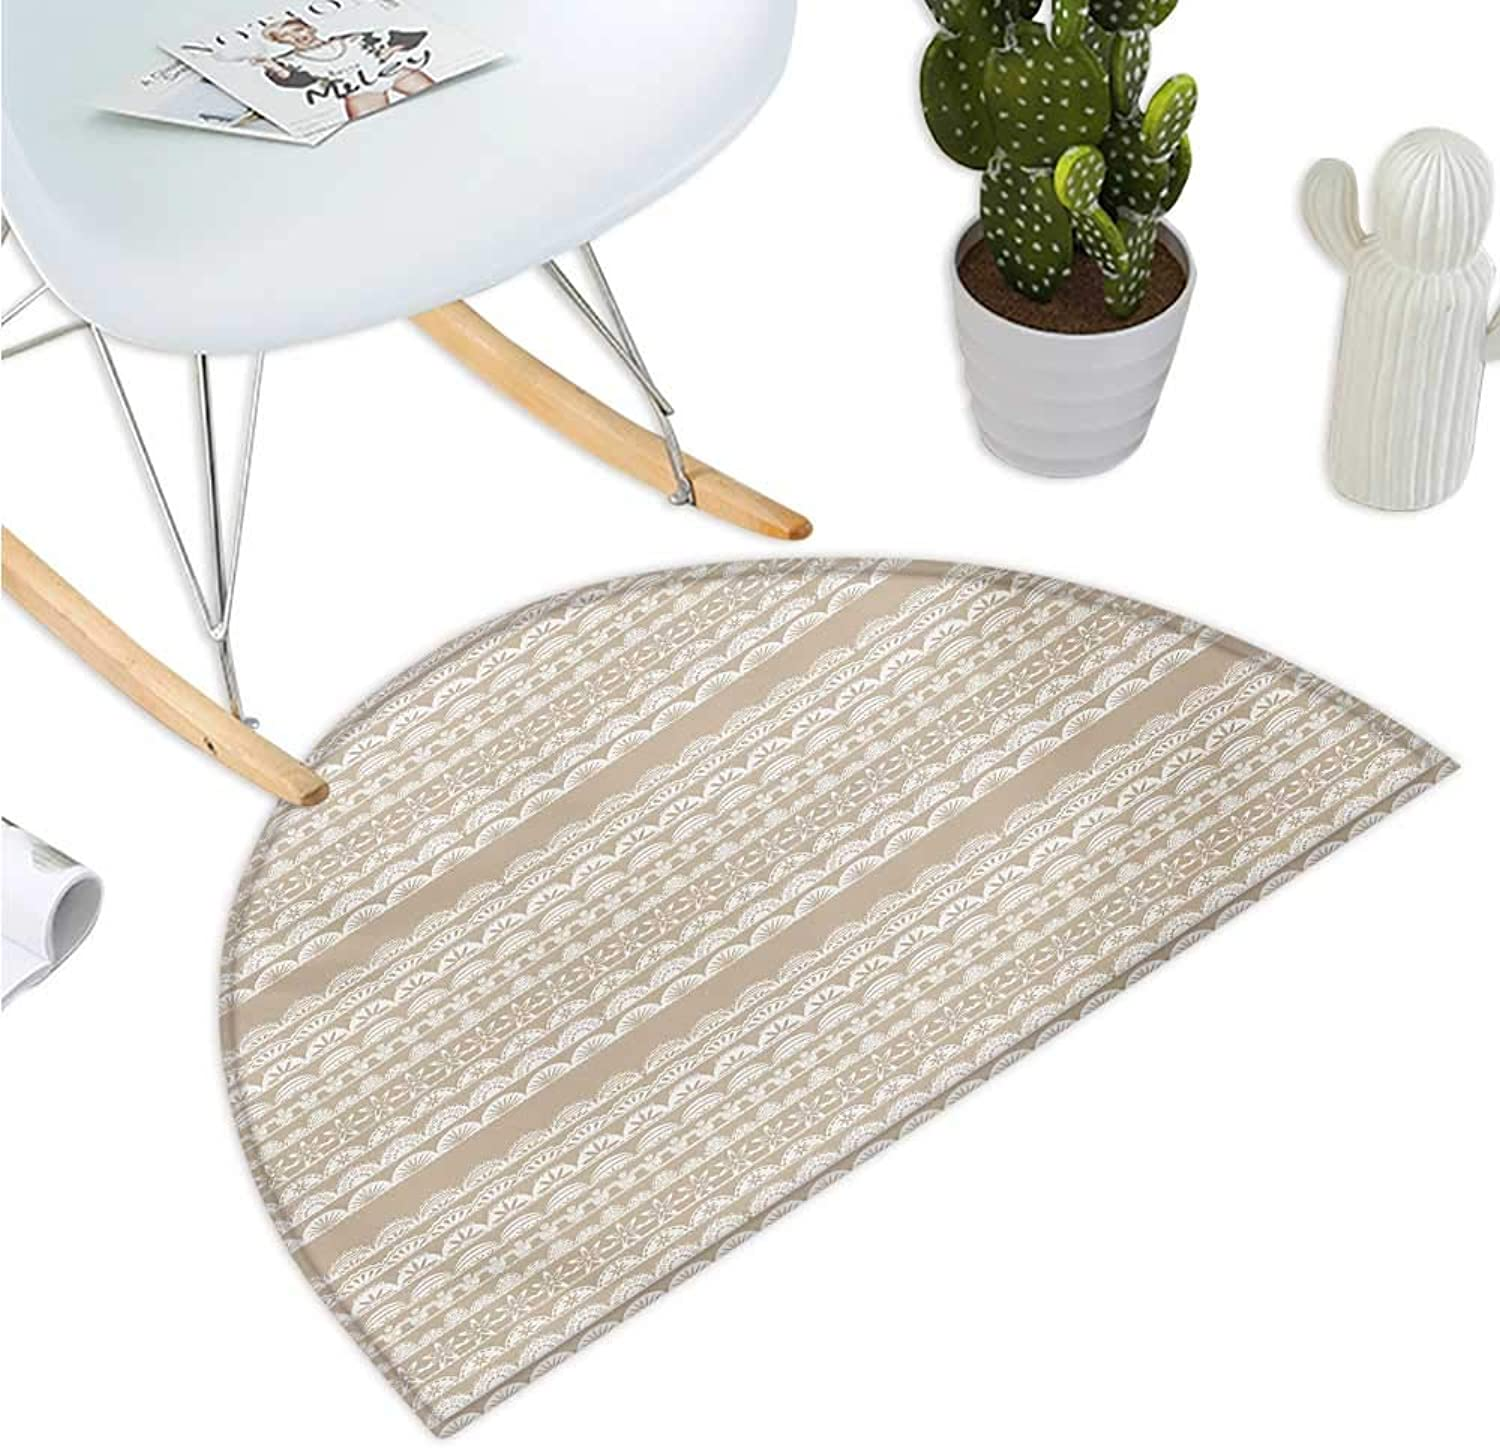 Tan and White Semicircular Cushion Lace Style Antique Border Motifs Collection Vintage and Feminine Ornament Halfmoon doormats H 35.4  xD 53.1  Tan White